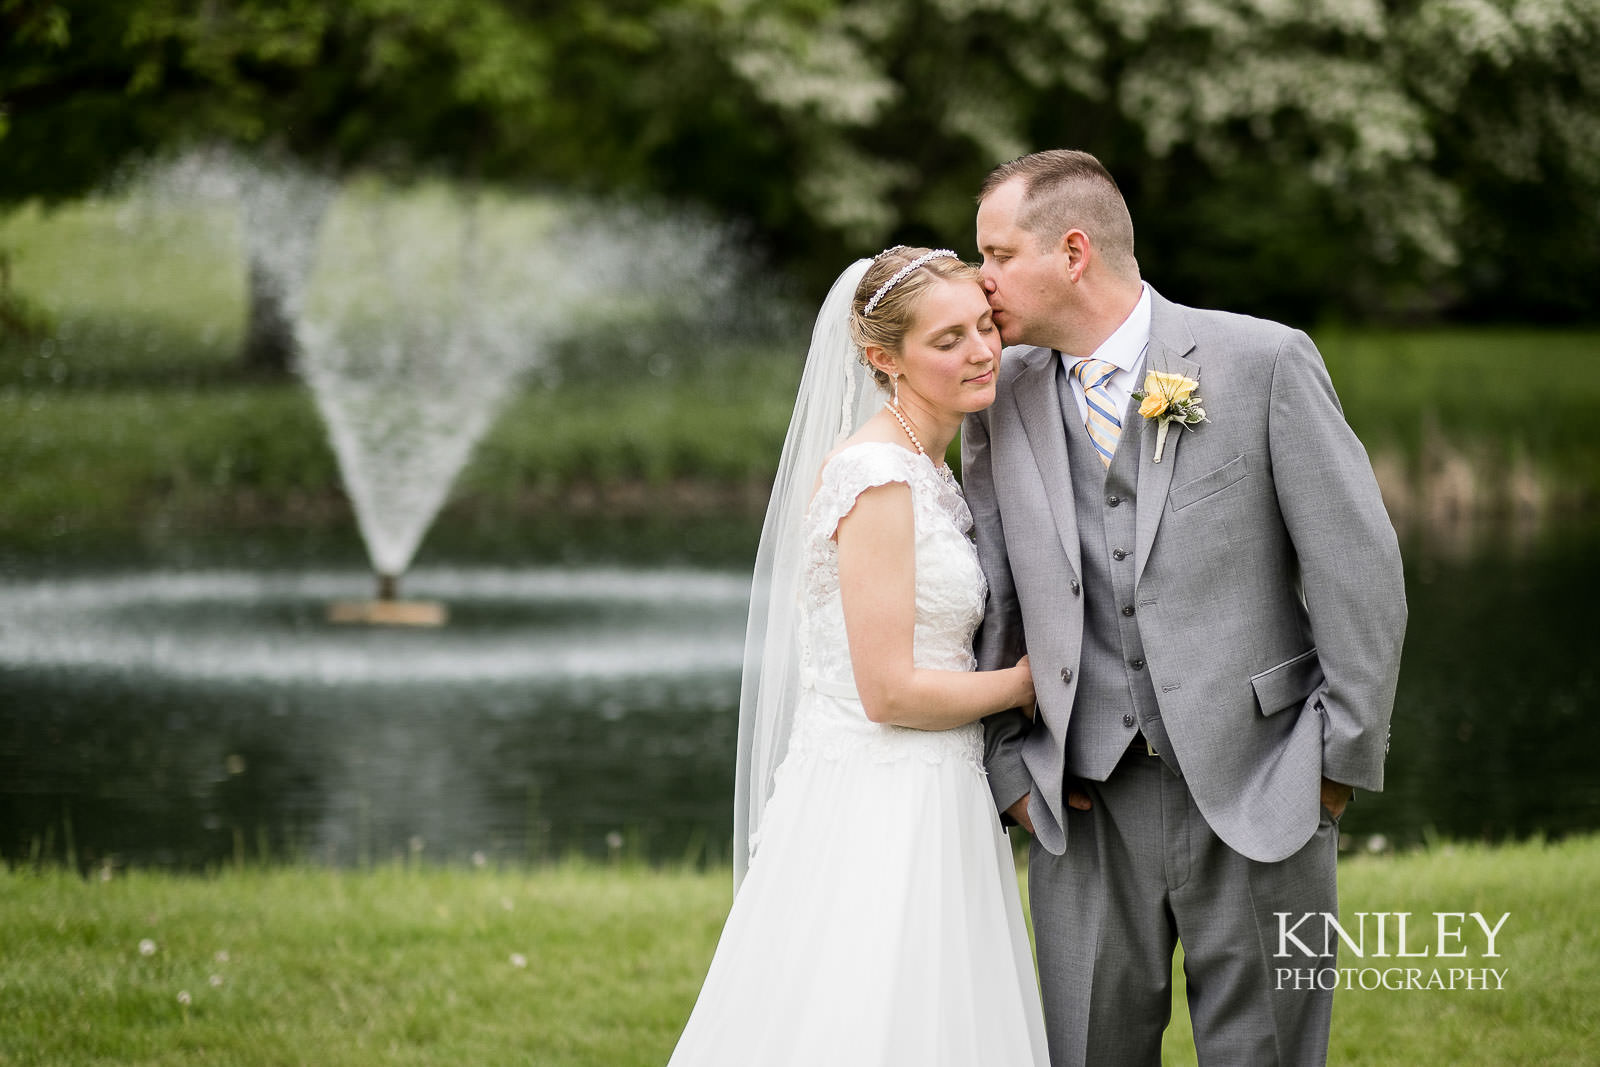 40-Plantation-Party-House-springtime-wedding-Rochester-NY-Kniley-Photography.jpg